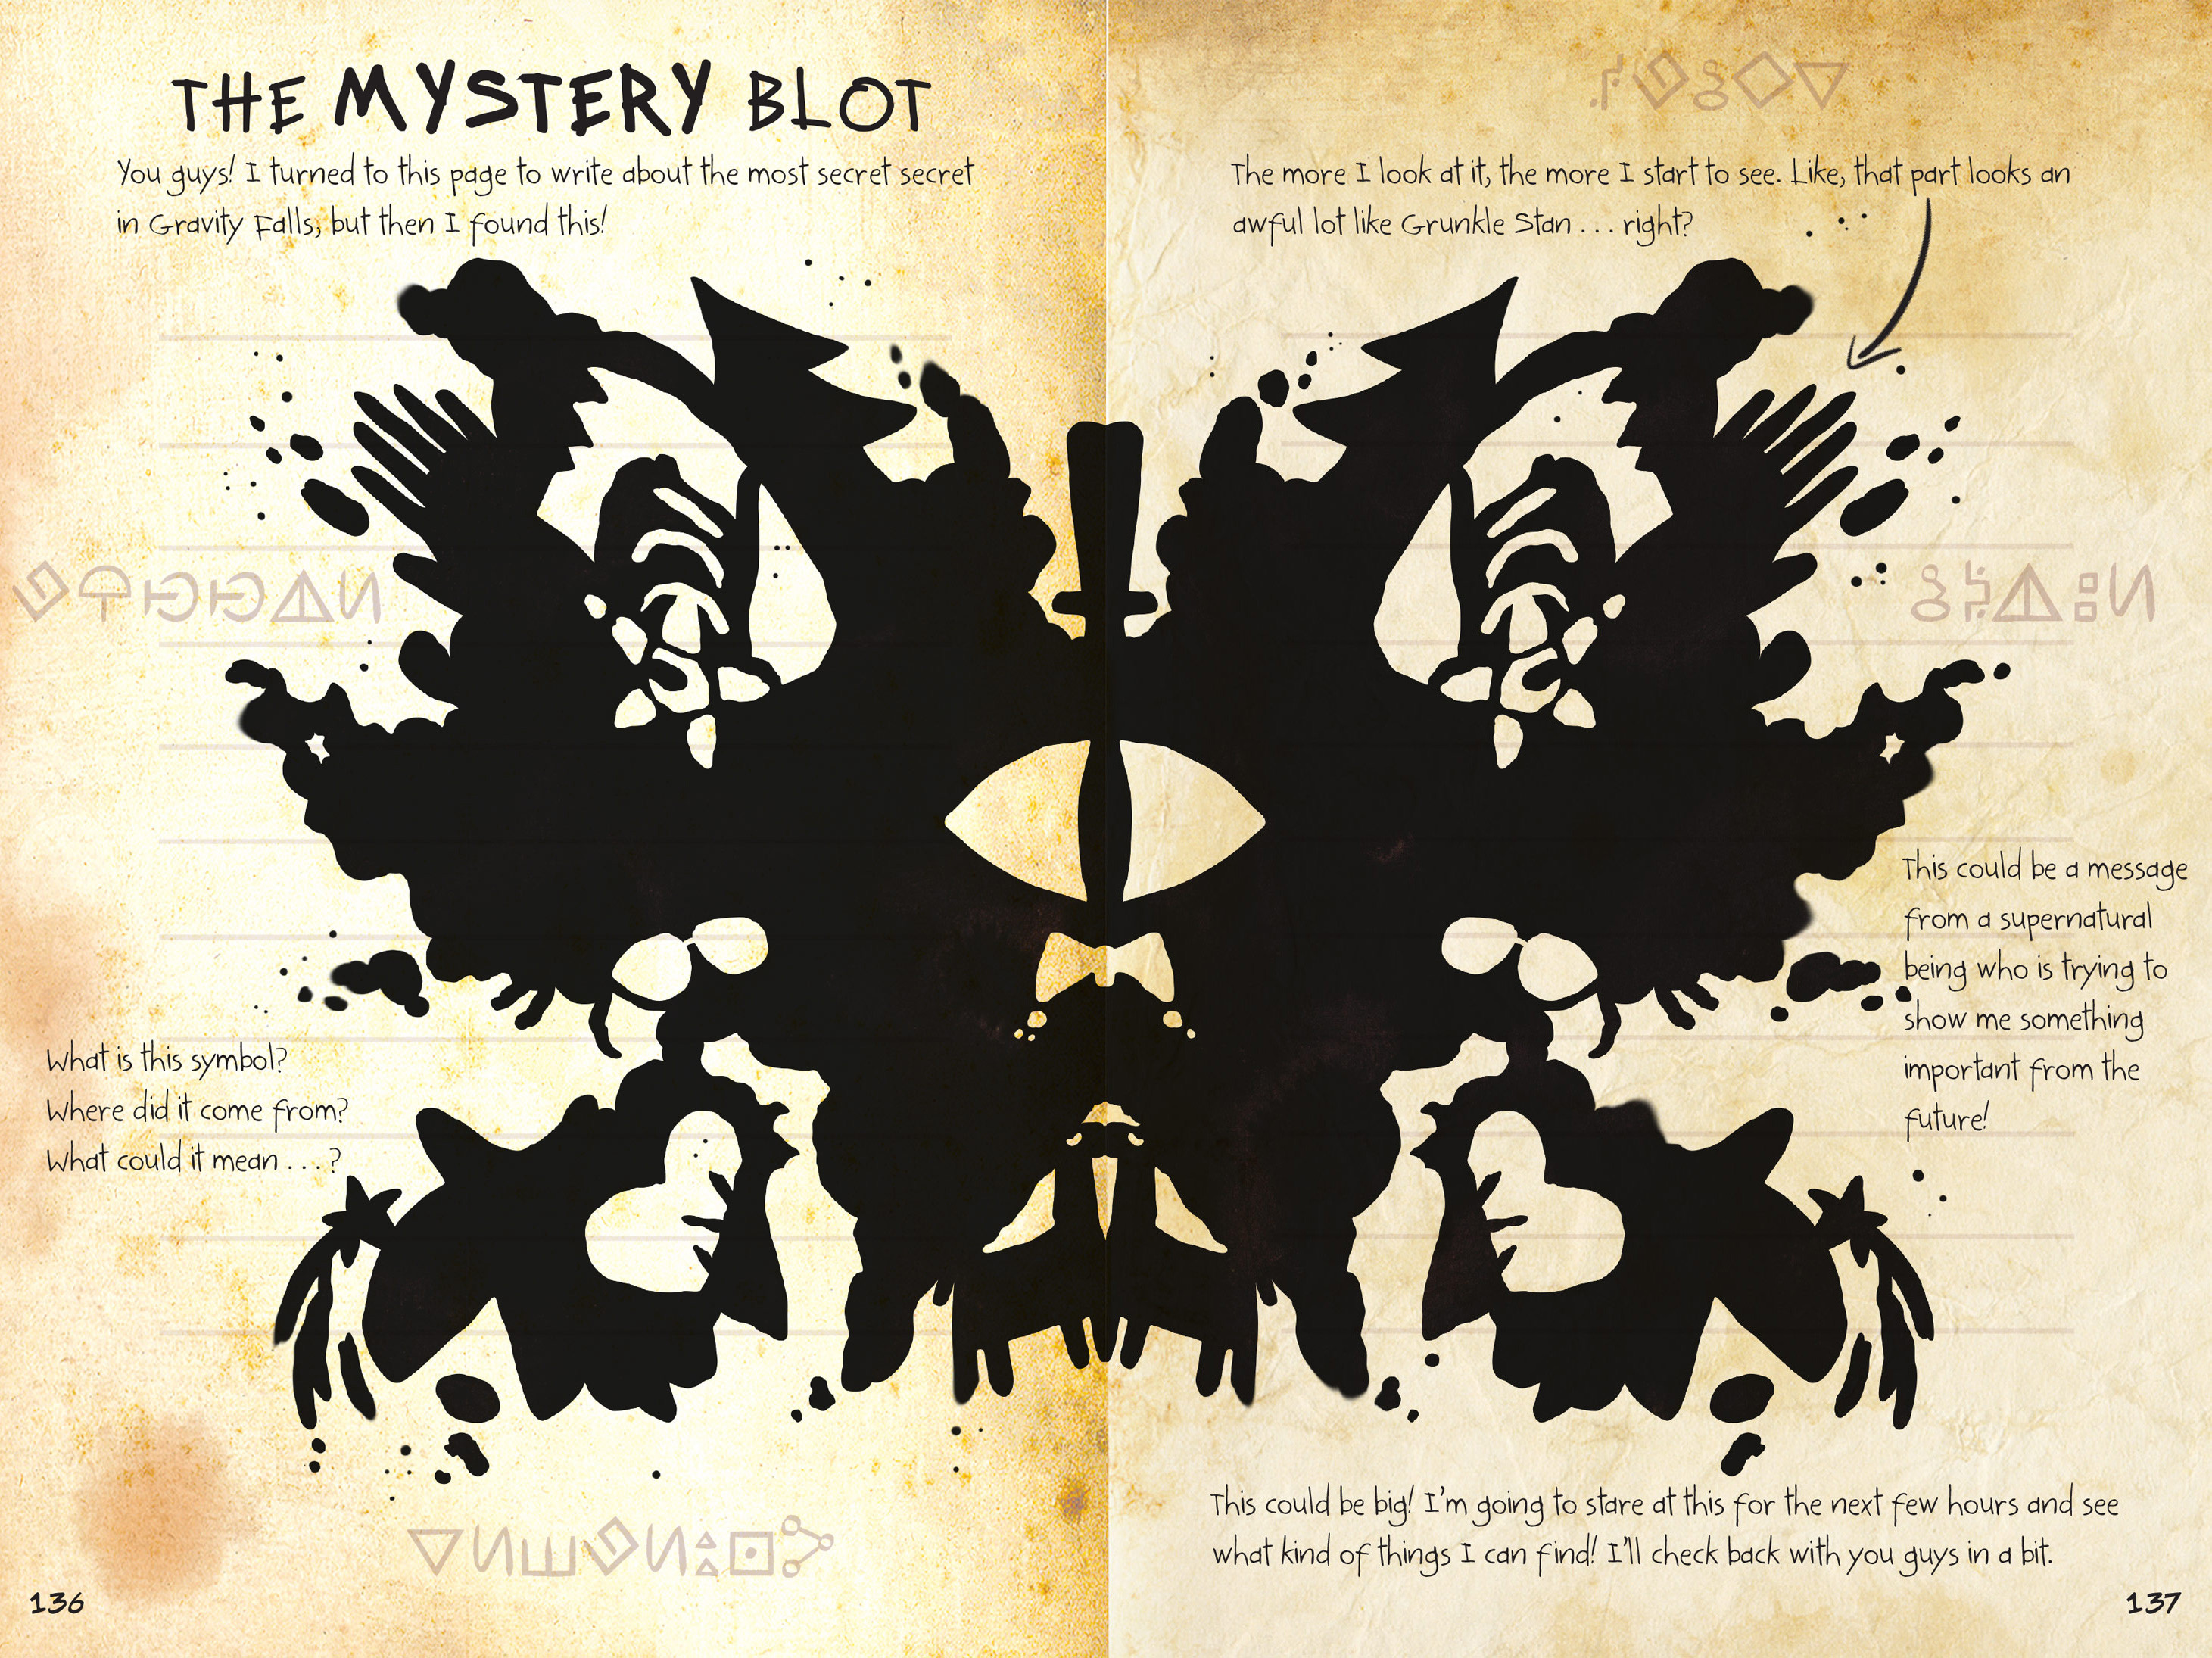 The Mystery Blot Bill Ciphers Ultimate Form Gravity Falls